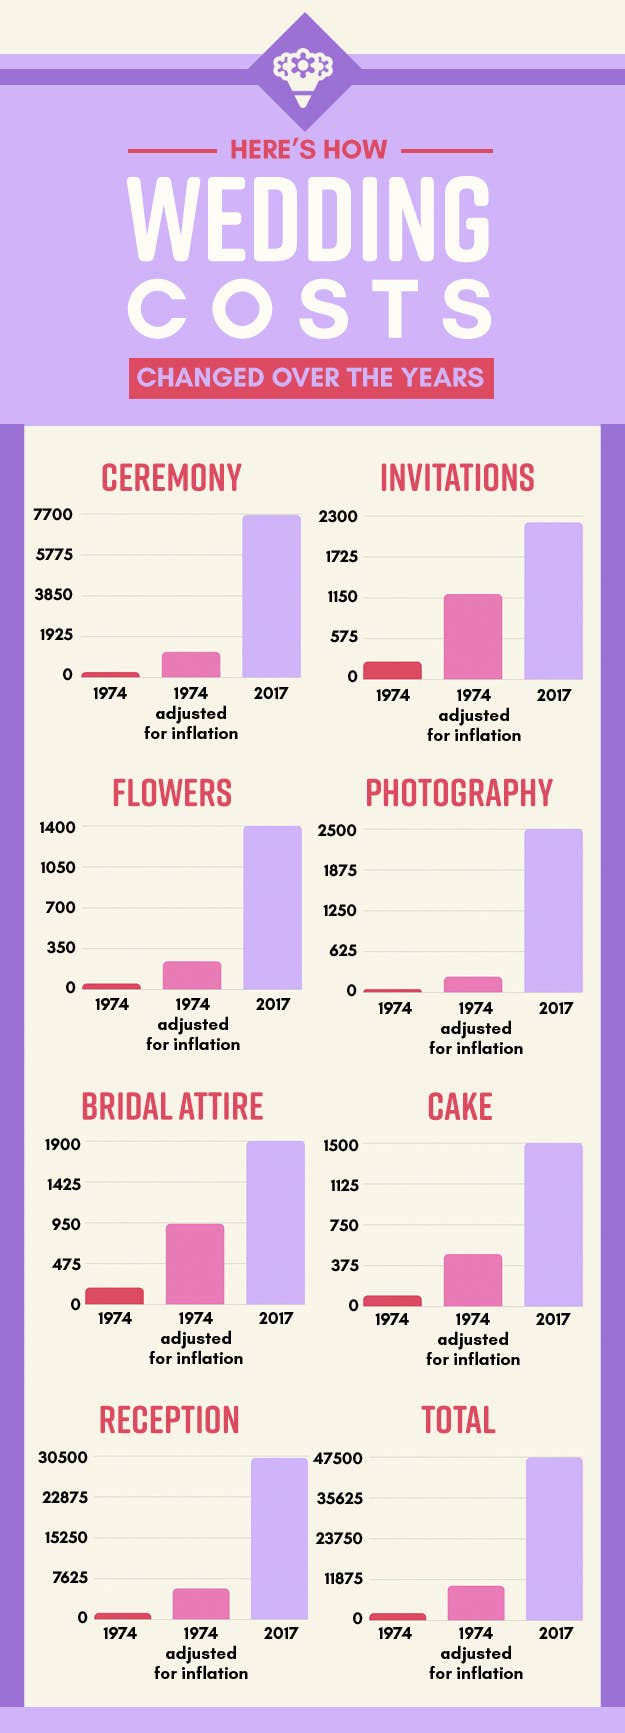 Heres What My Parents 1974 Wedding Would Cost In 2017 Dollars